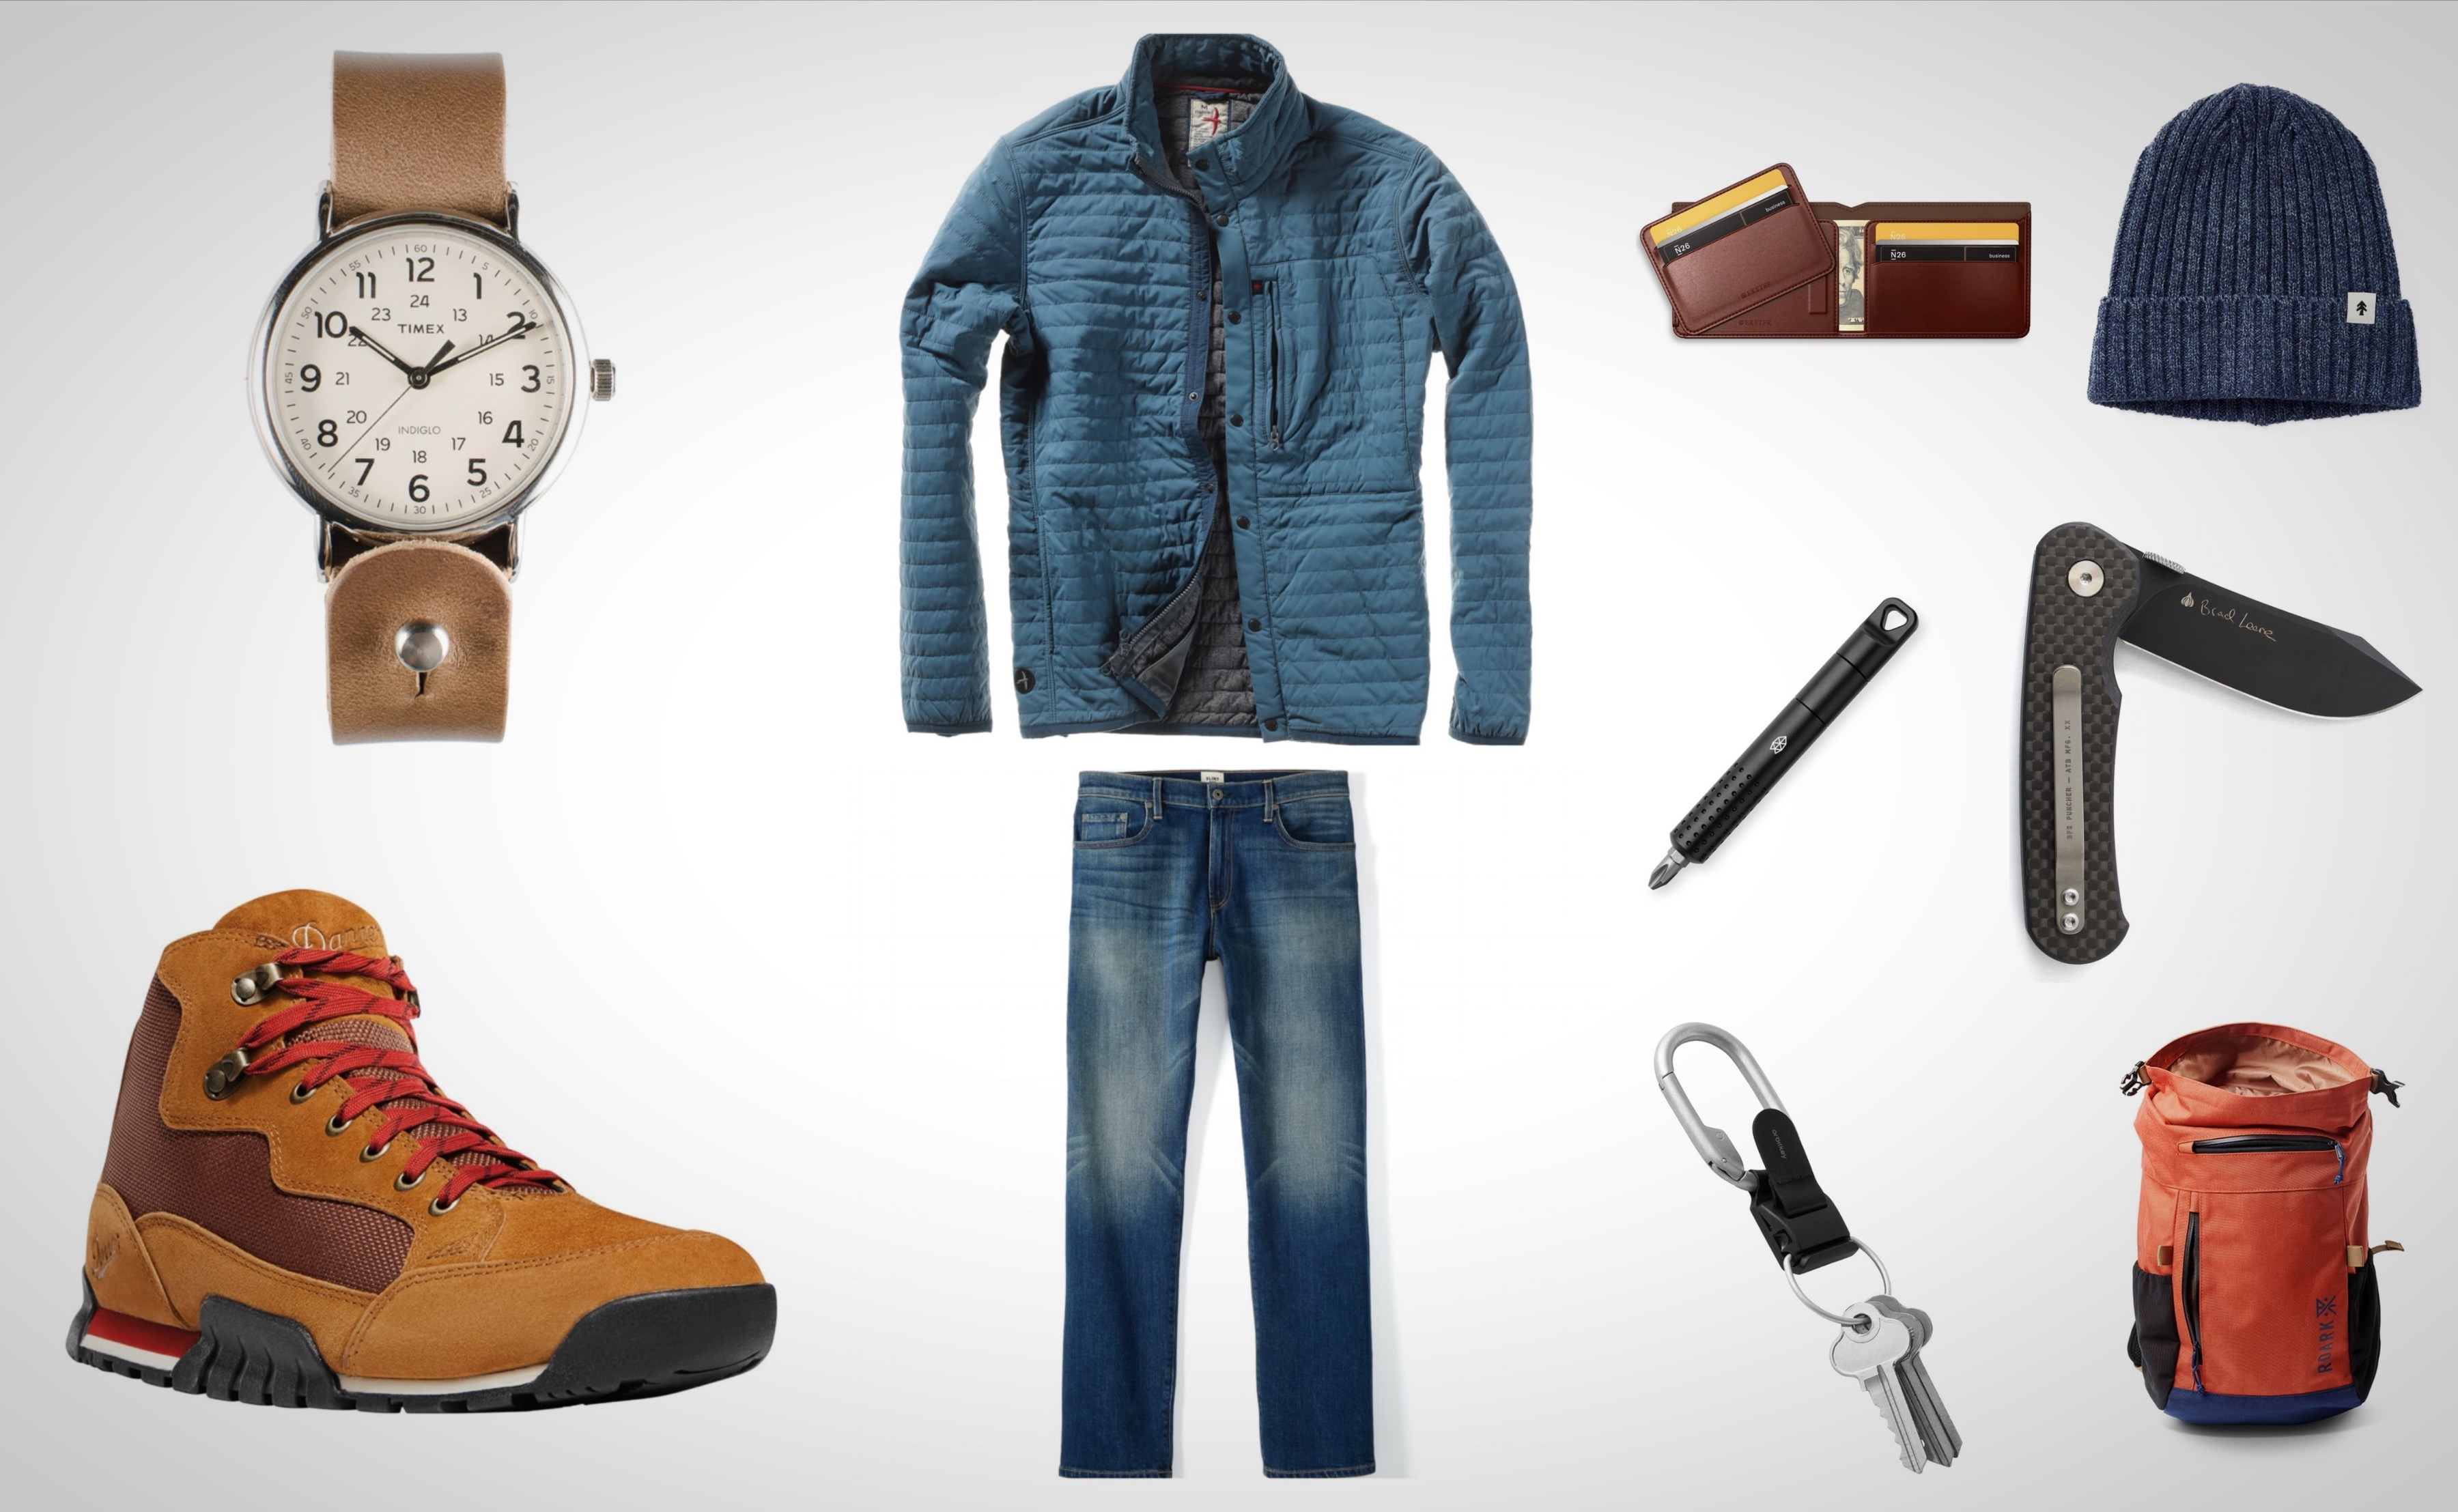 10 Must-Have Everyday Carry Essentials To Improve Your Day ...